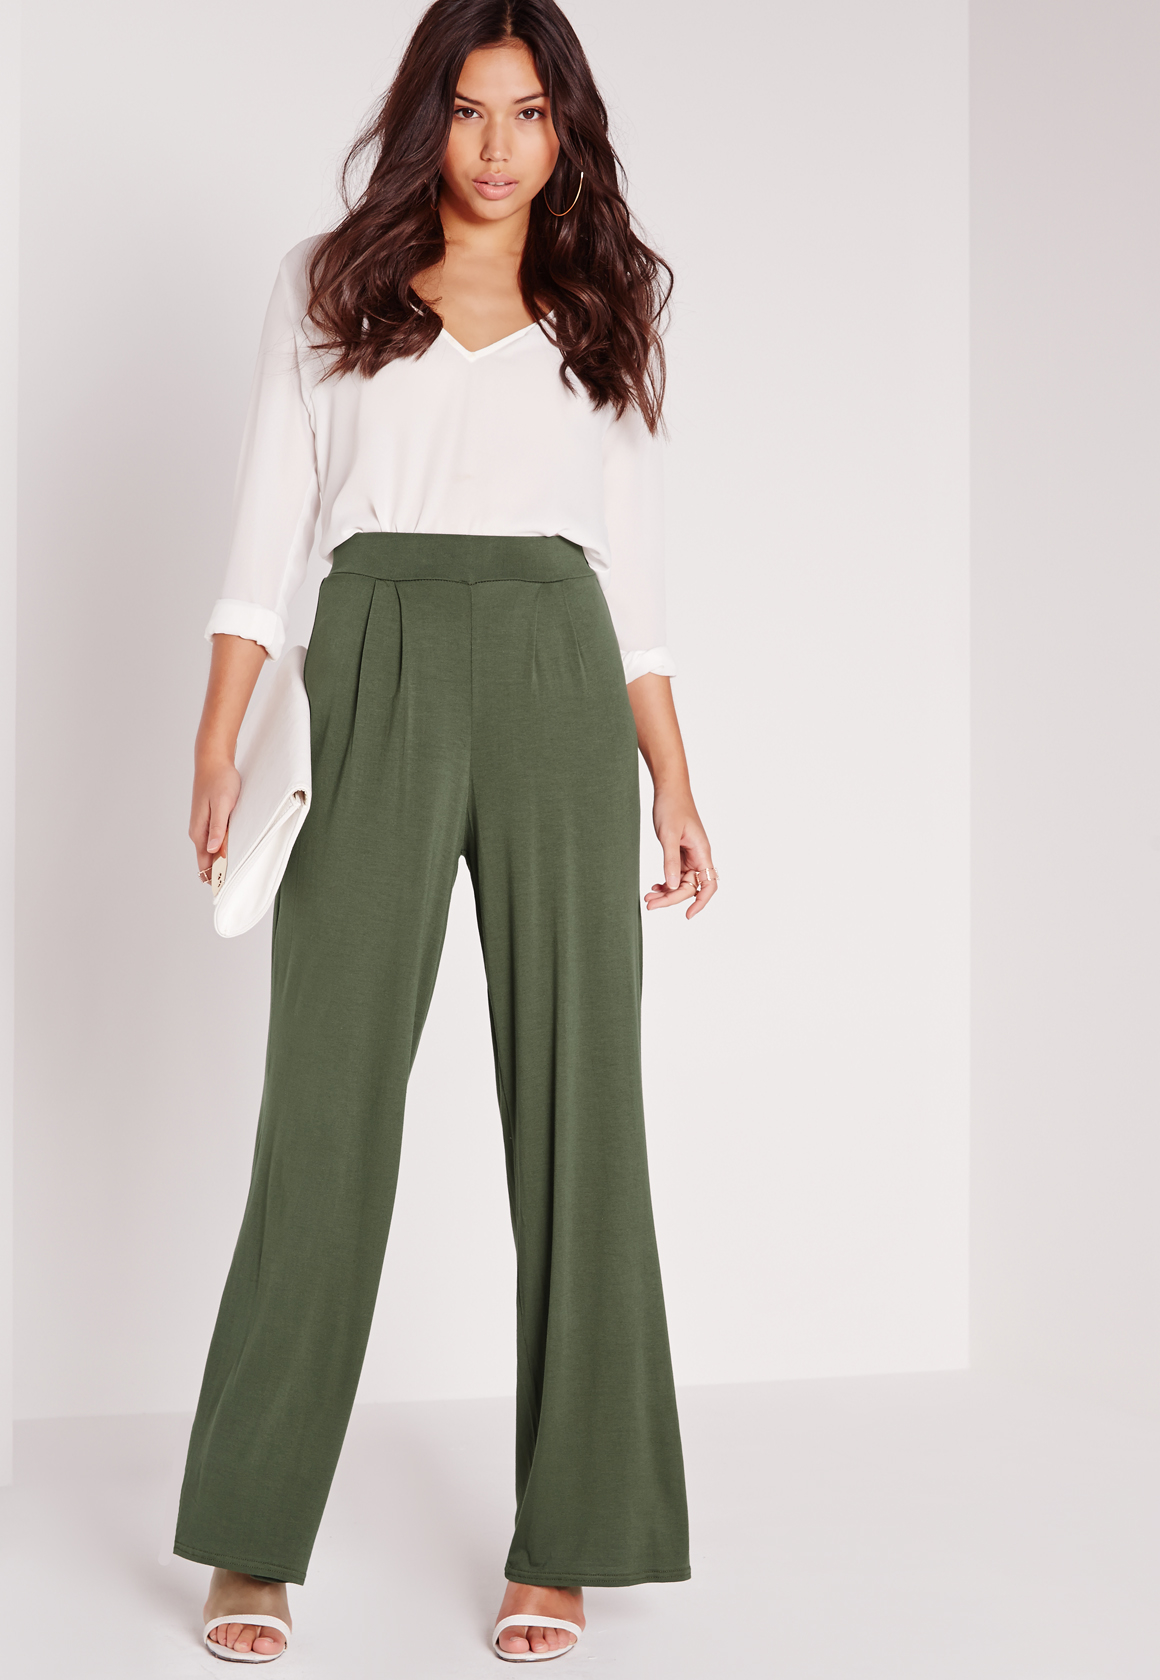 Find khaki wide leg from a vast selection of Women's Pants, Clothing, Shoes and Accessories. Get great deals on eBay!